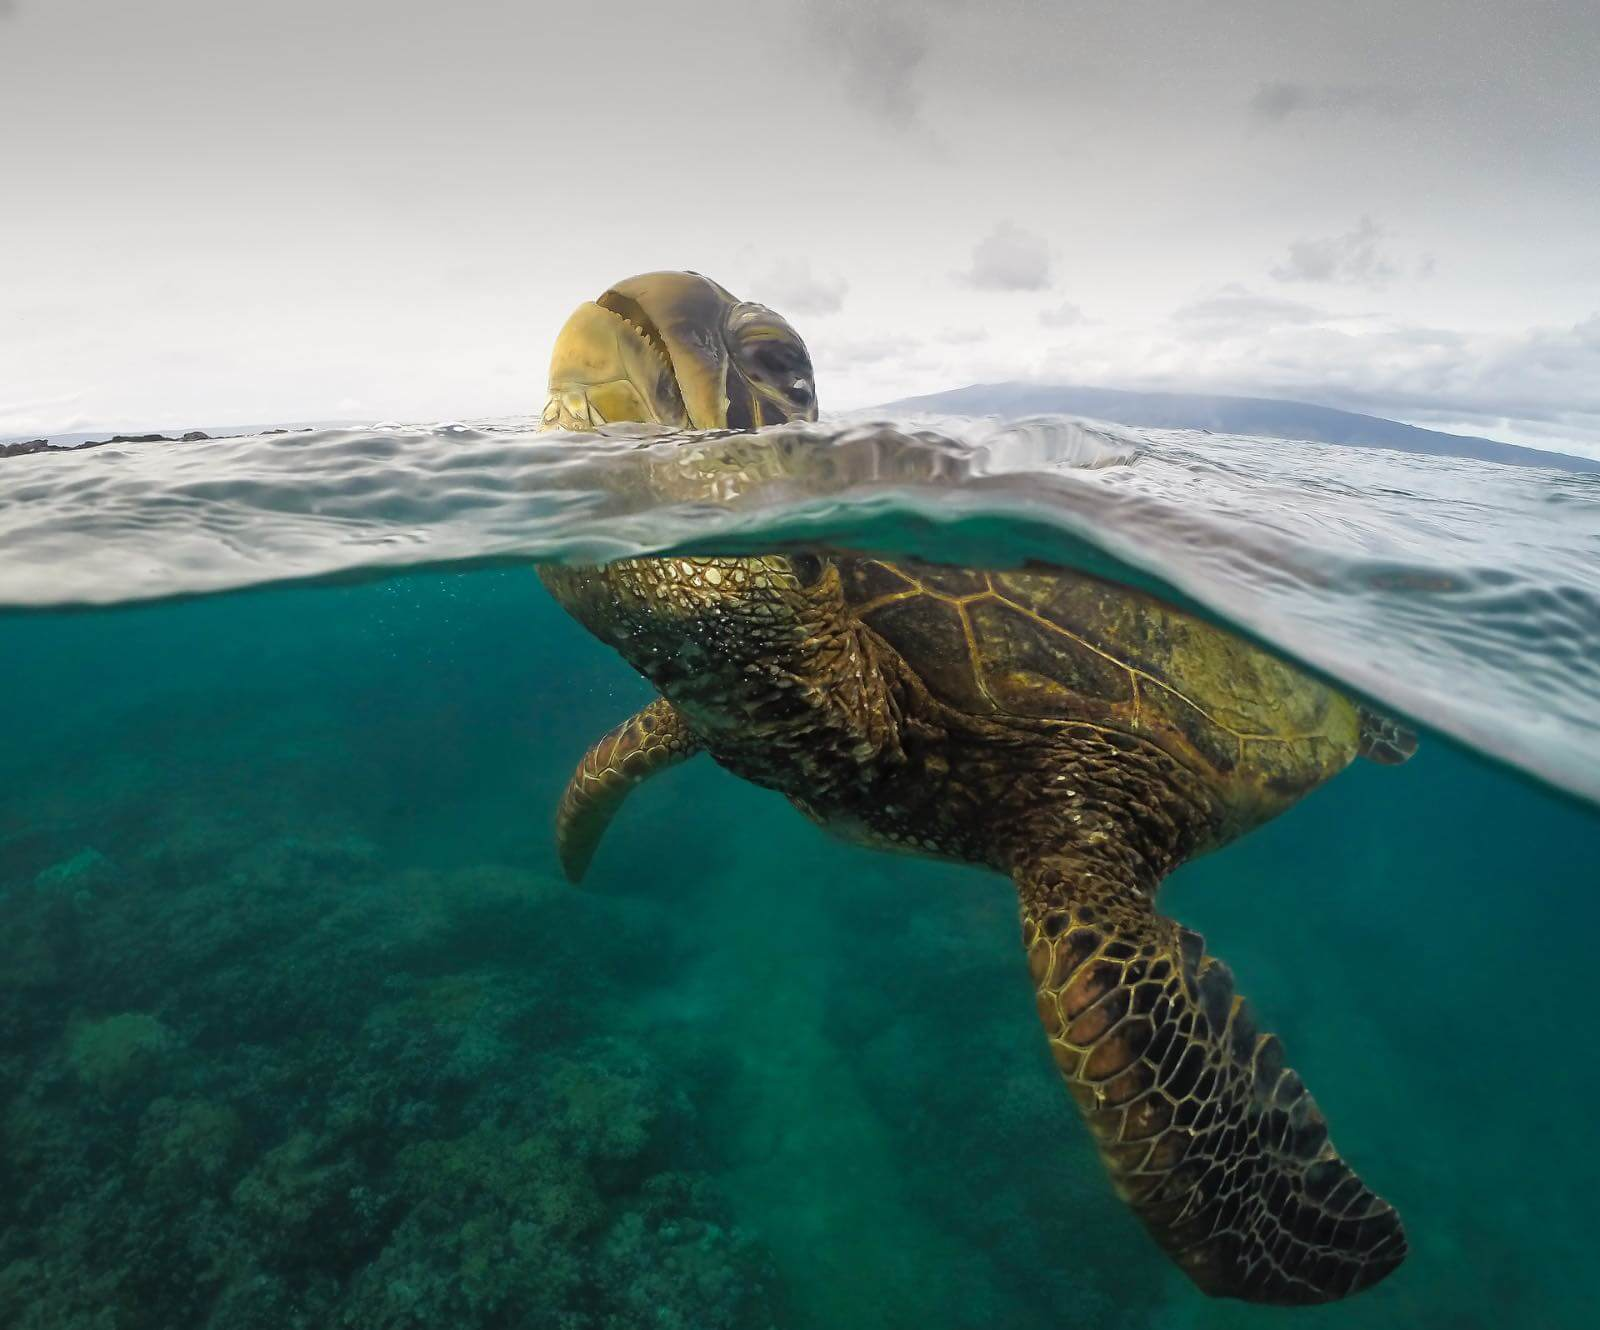 Snorkeling with sea turtles on Maui